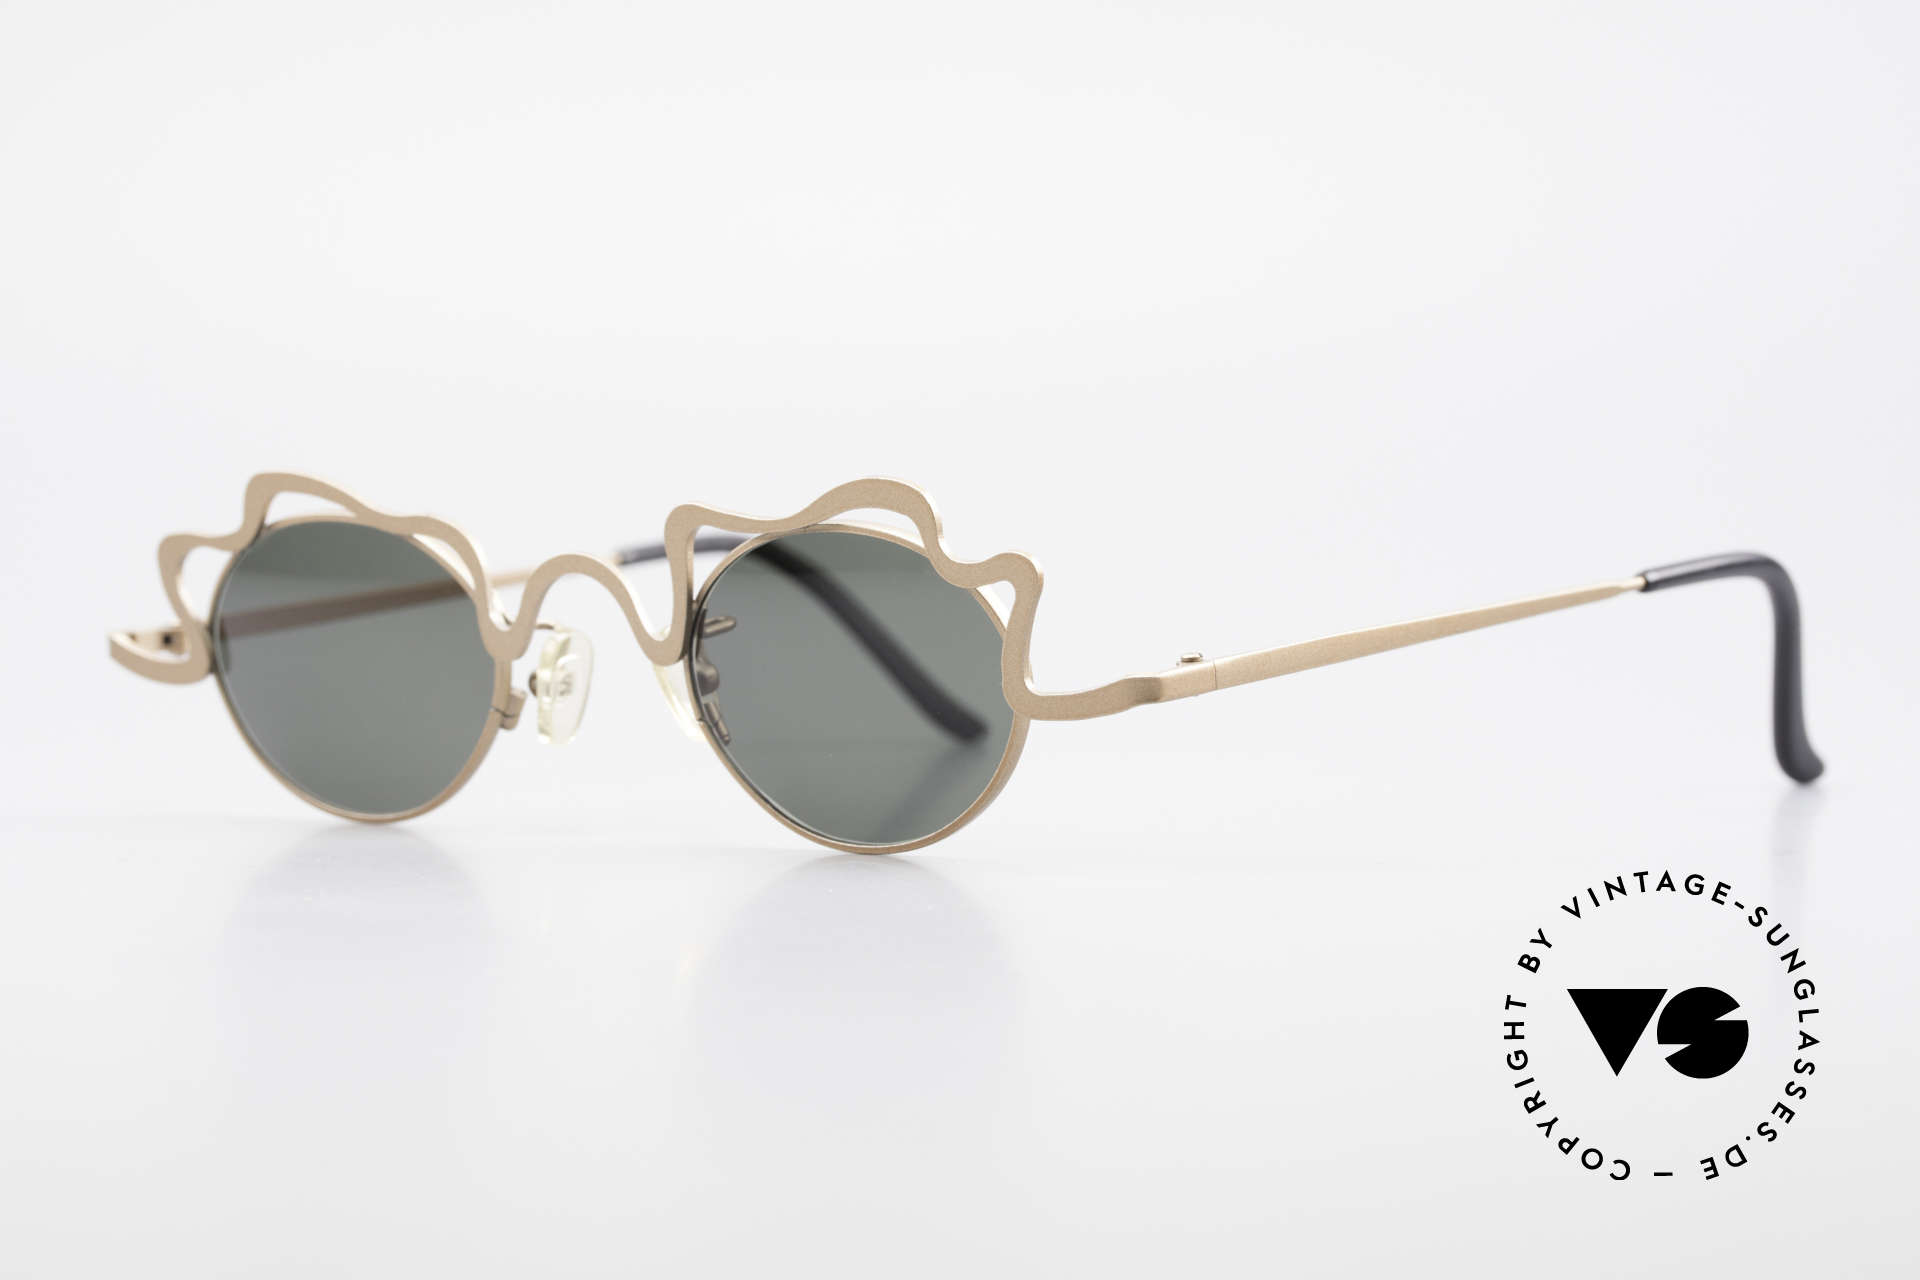 Theo Belgium Tortelini Spaghetti Sunglasses Ladies, made for the avant-garde, individualists; trend-setters, Made for Women